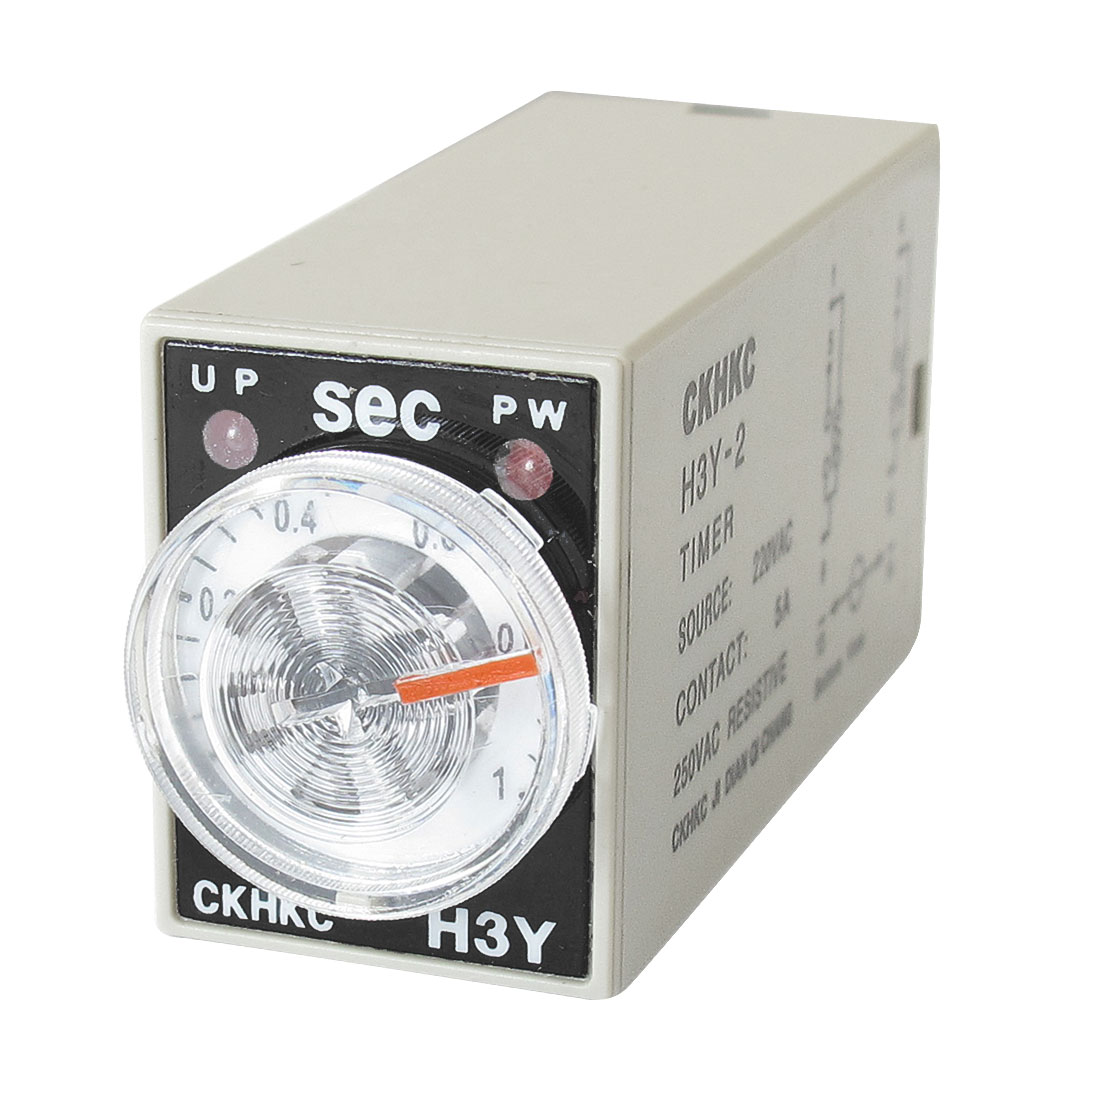 AC 220V 8P Terminals DPDT 1 Seconds 1S Delay Timing Time Relay H3Y-2